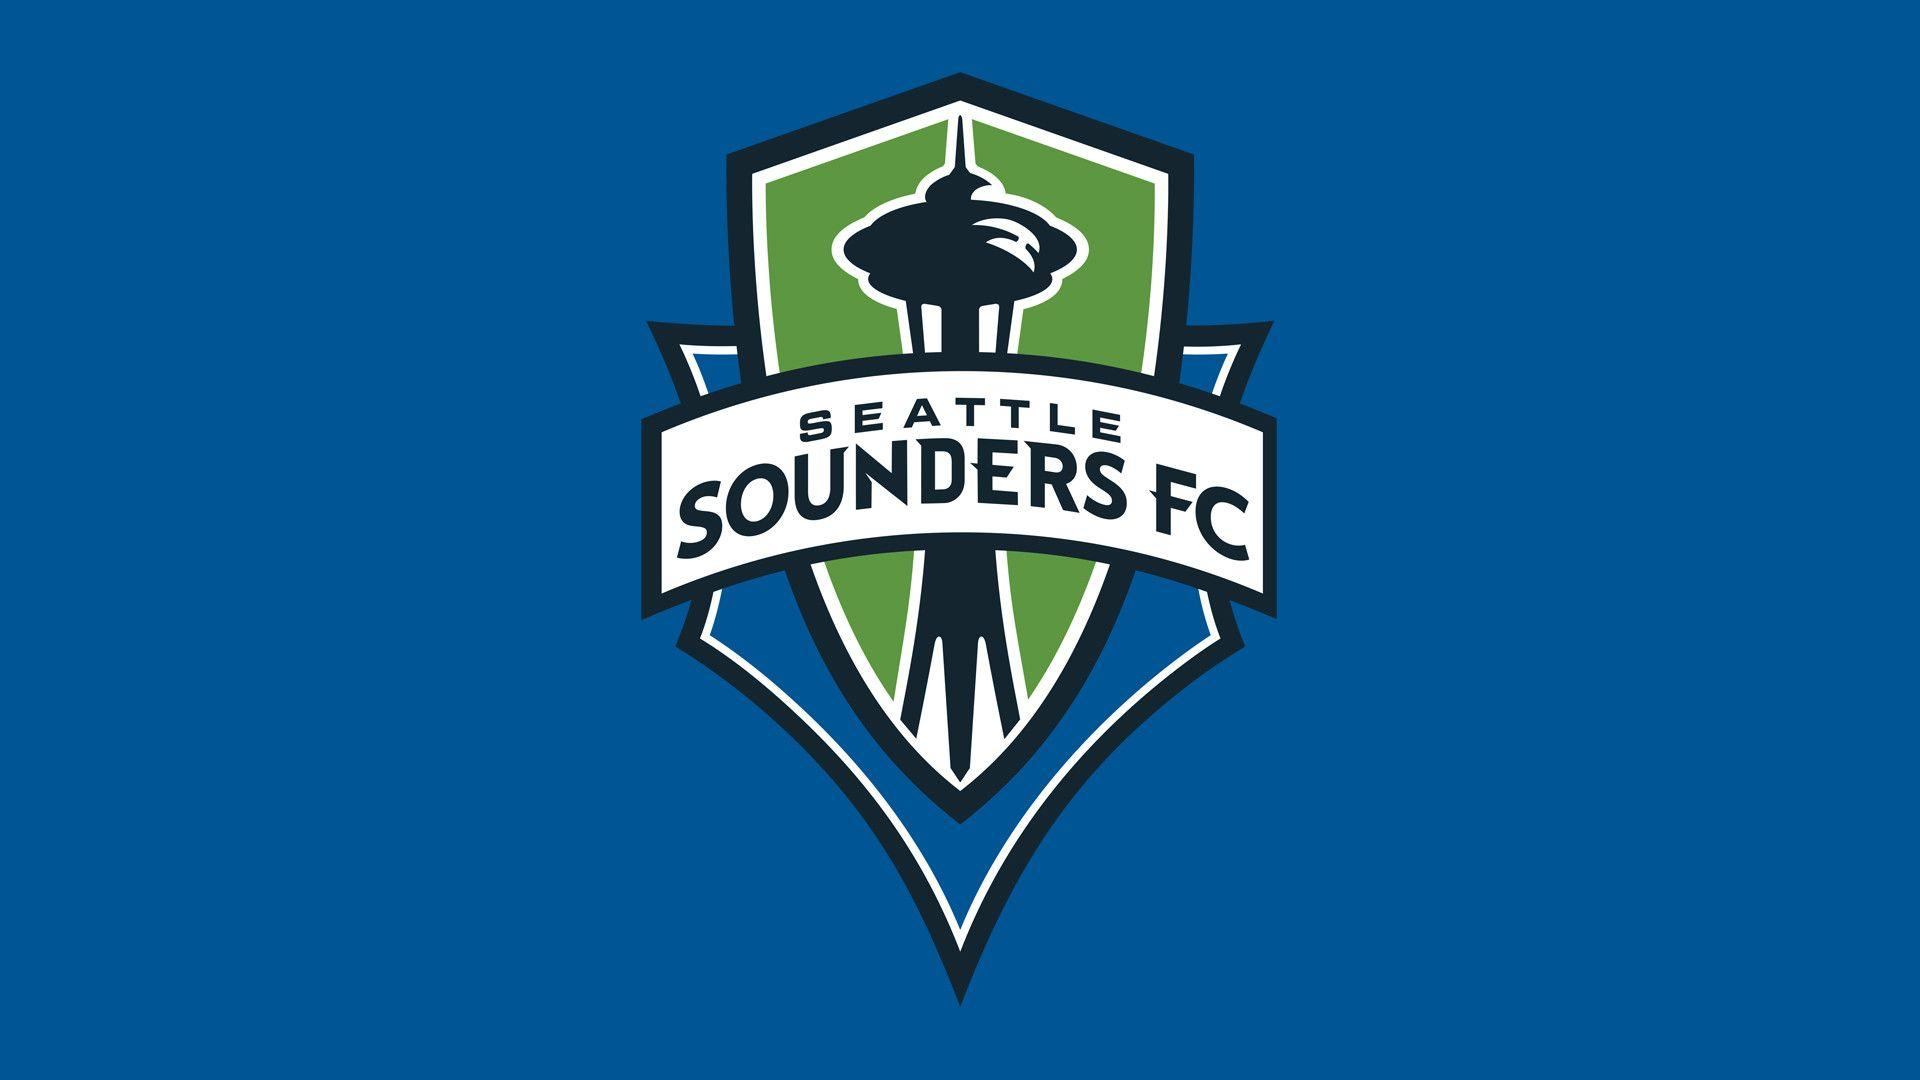 MLS Seattle Sounders FC Logo wallpapers 2018 in Soccer